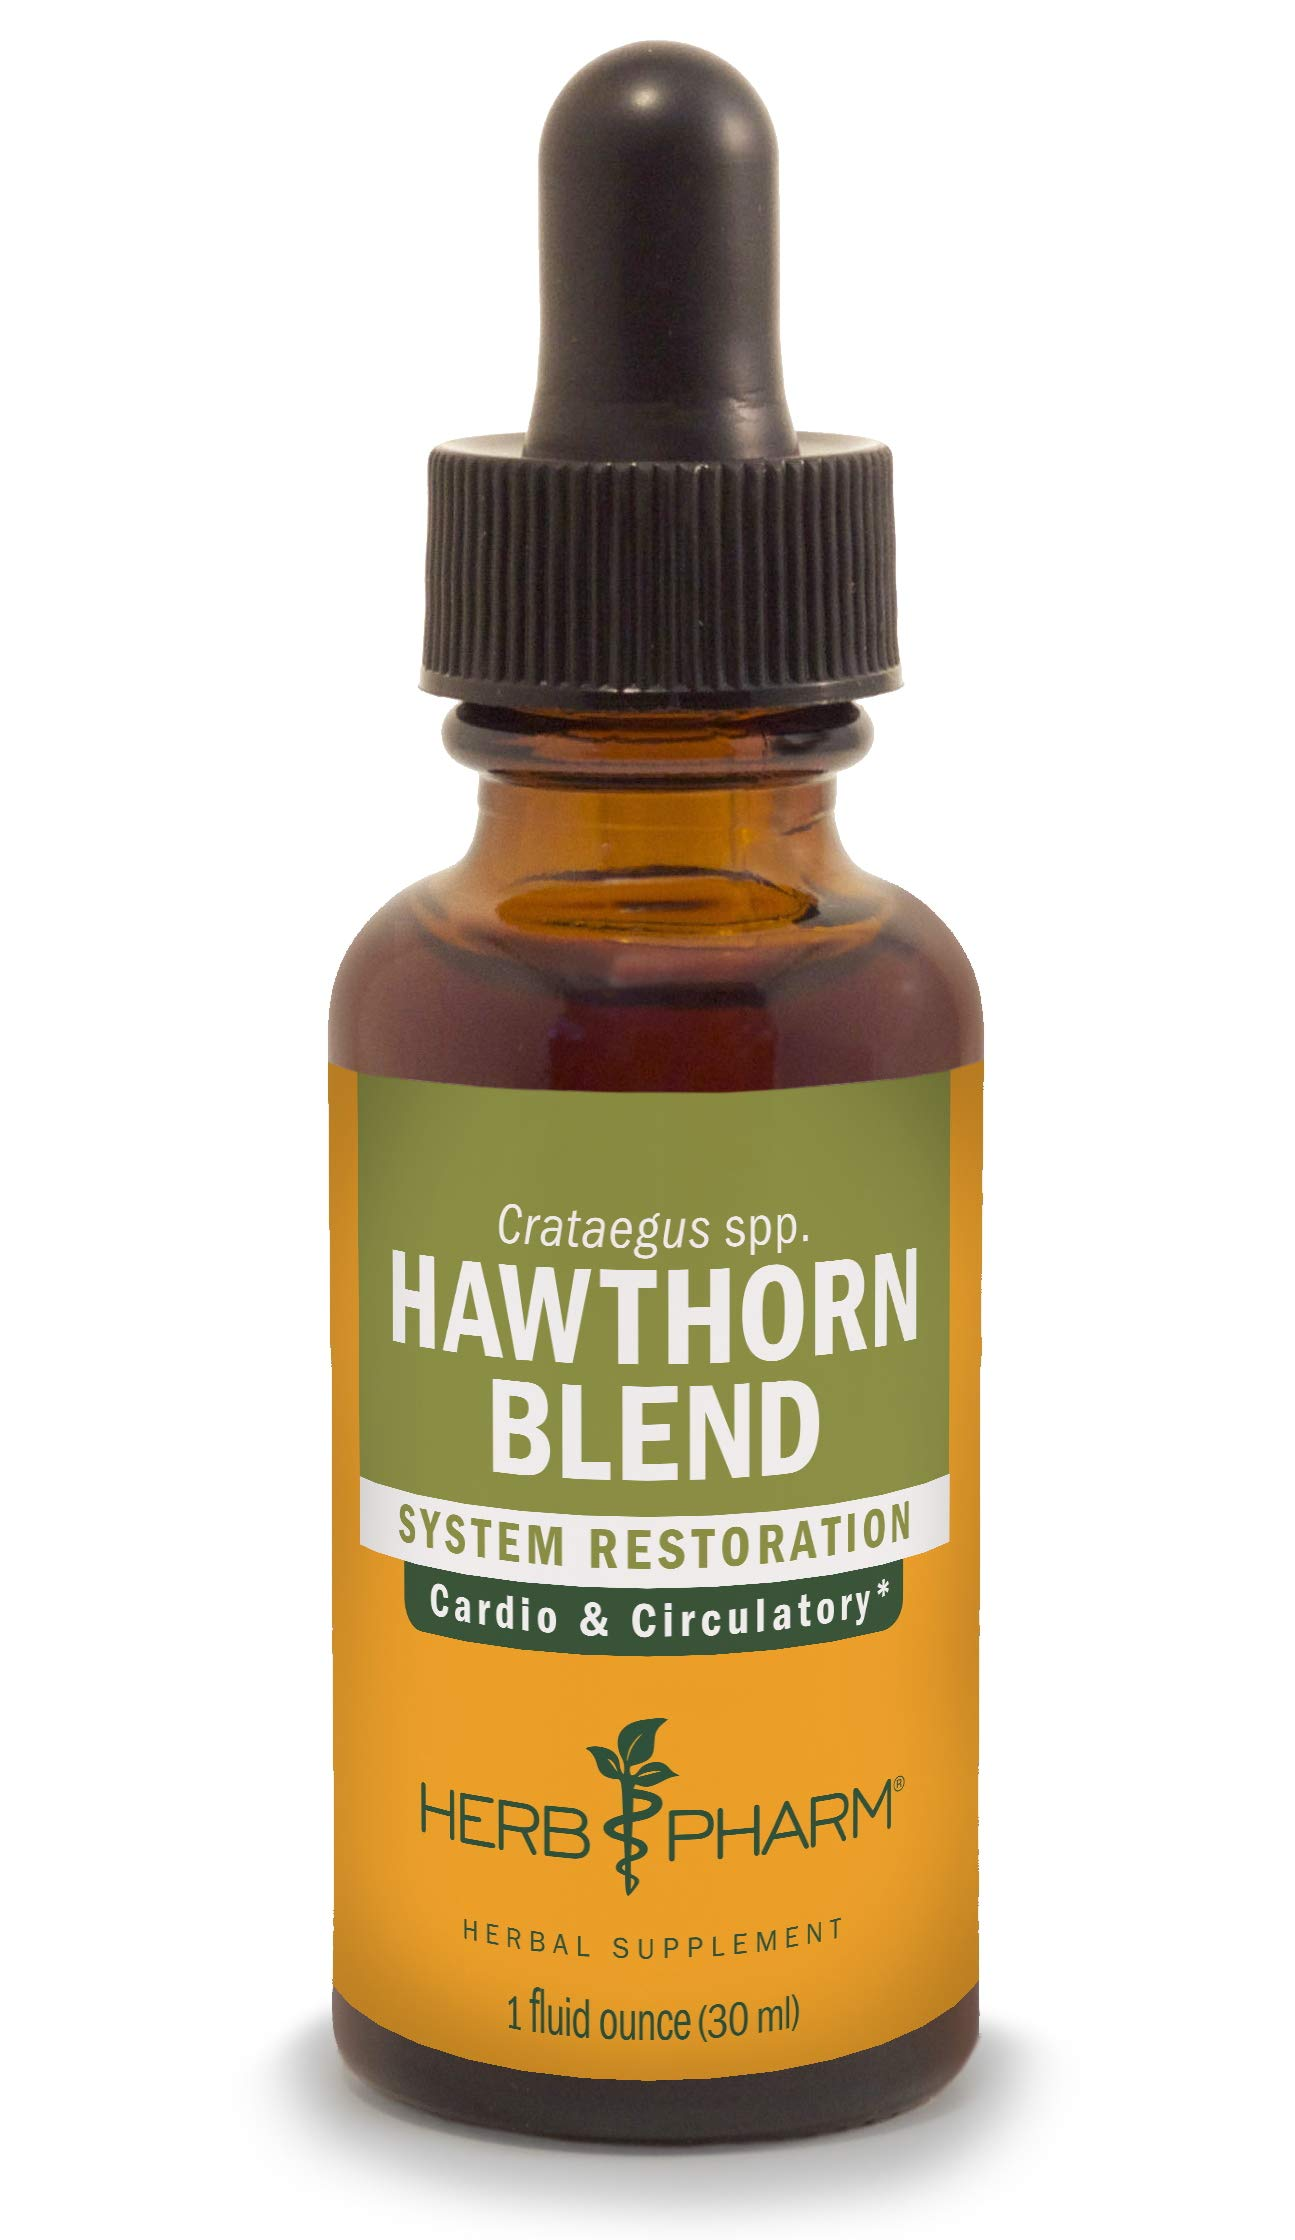 Herb Pharm Hawthorn Blend Liquid Extract for Cardiovascular and Circulatory Support - 1 Ounce